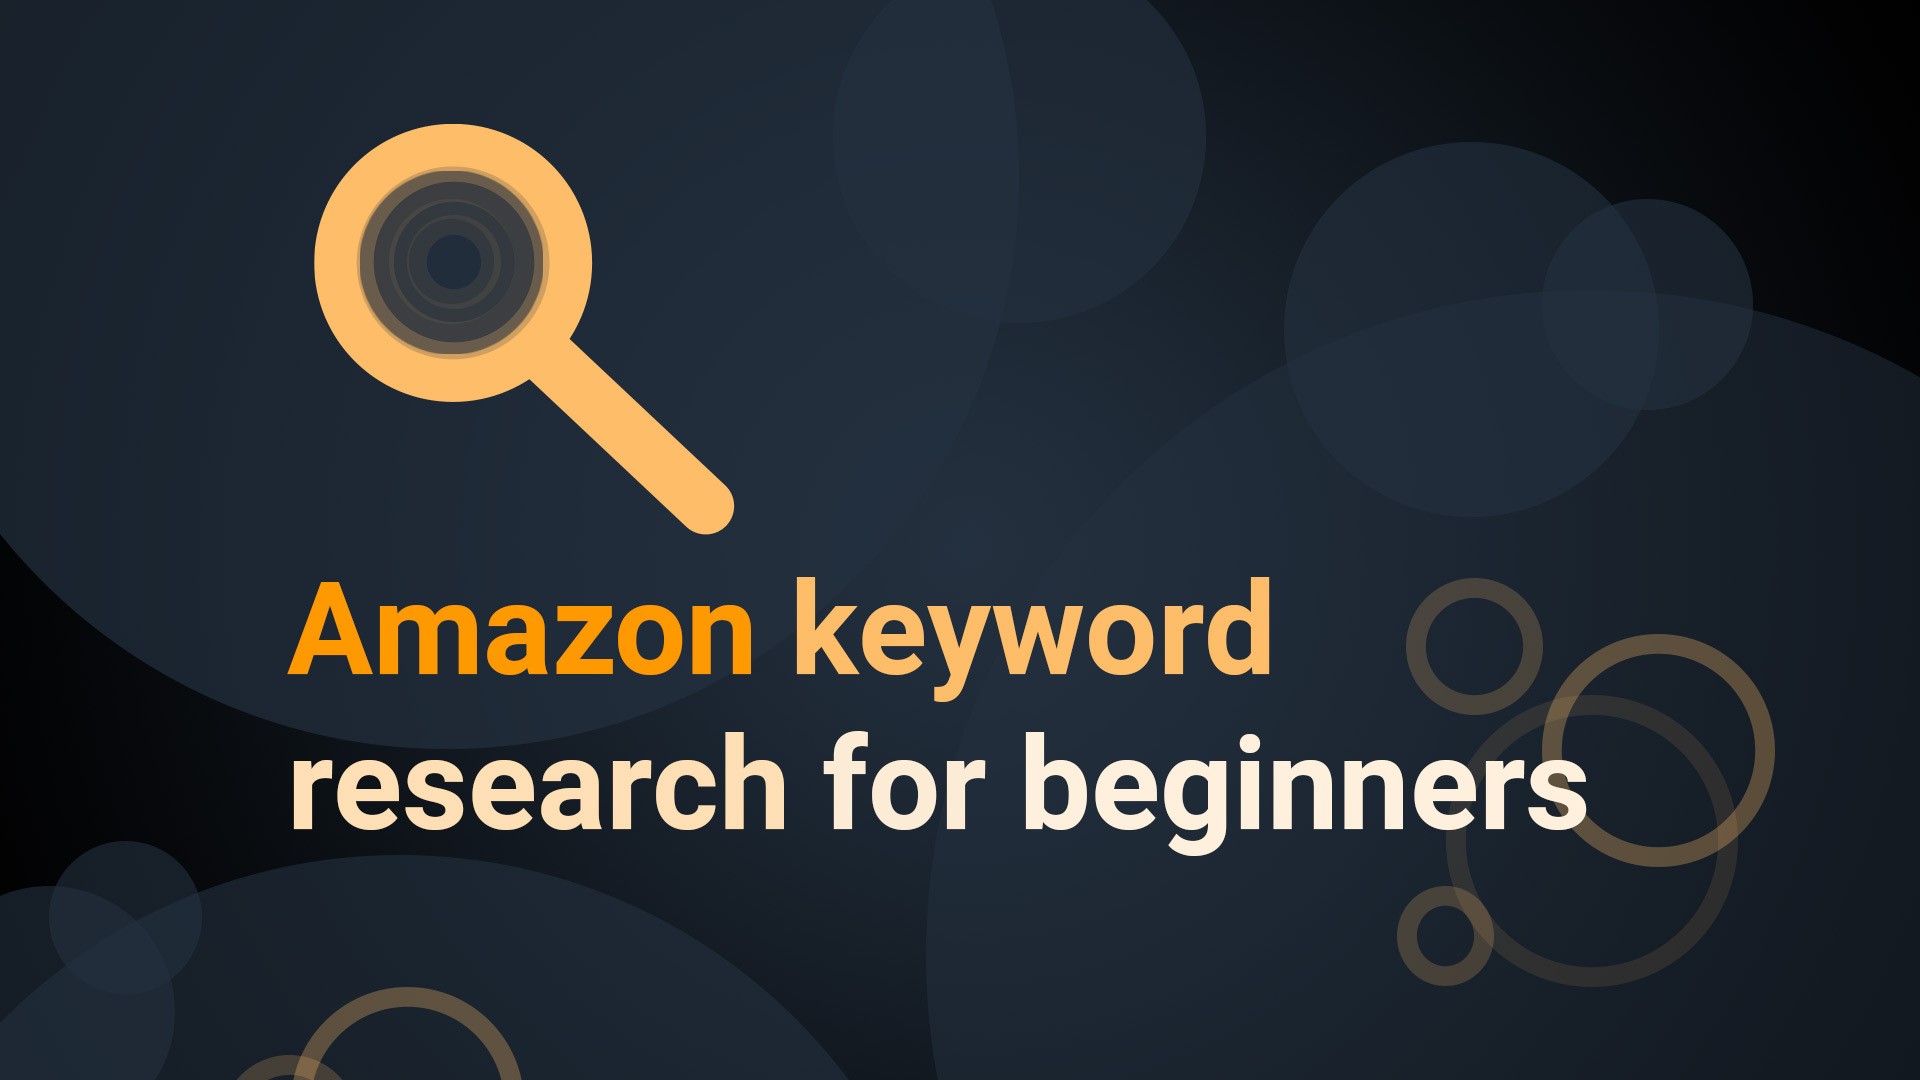 Amazon Keyword Research for Beginners